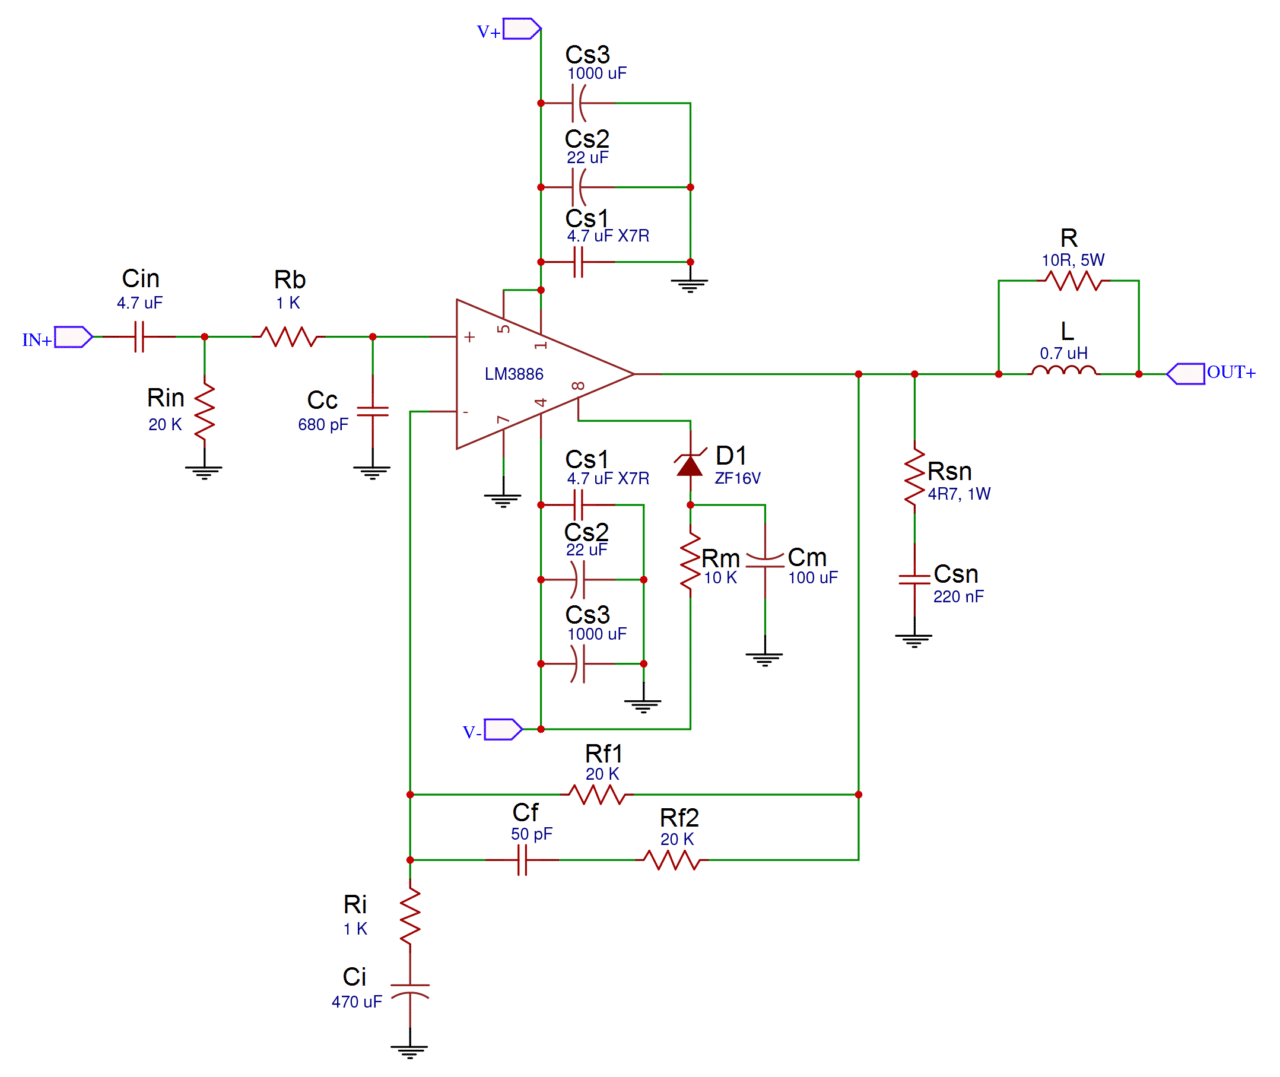 A Complete Guide To Design And Build Hi Fi Lm3886 Amplifier Into How The Diagram In Link Maps Circuit Like This Ill Be Using Schematic Below Its Basically Same As One Datasheet But With Optional Stability Components Included